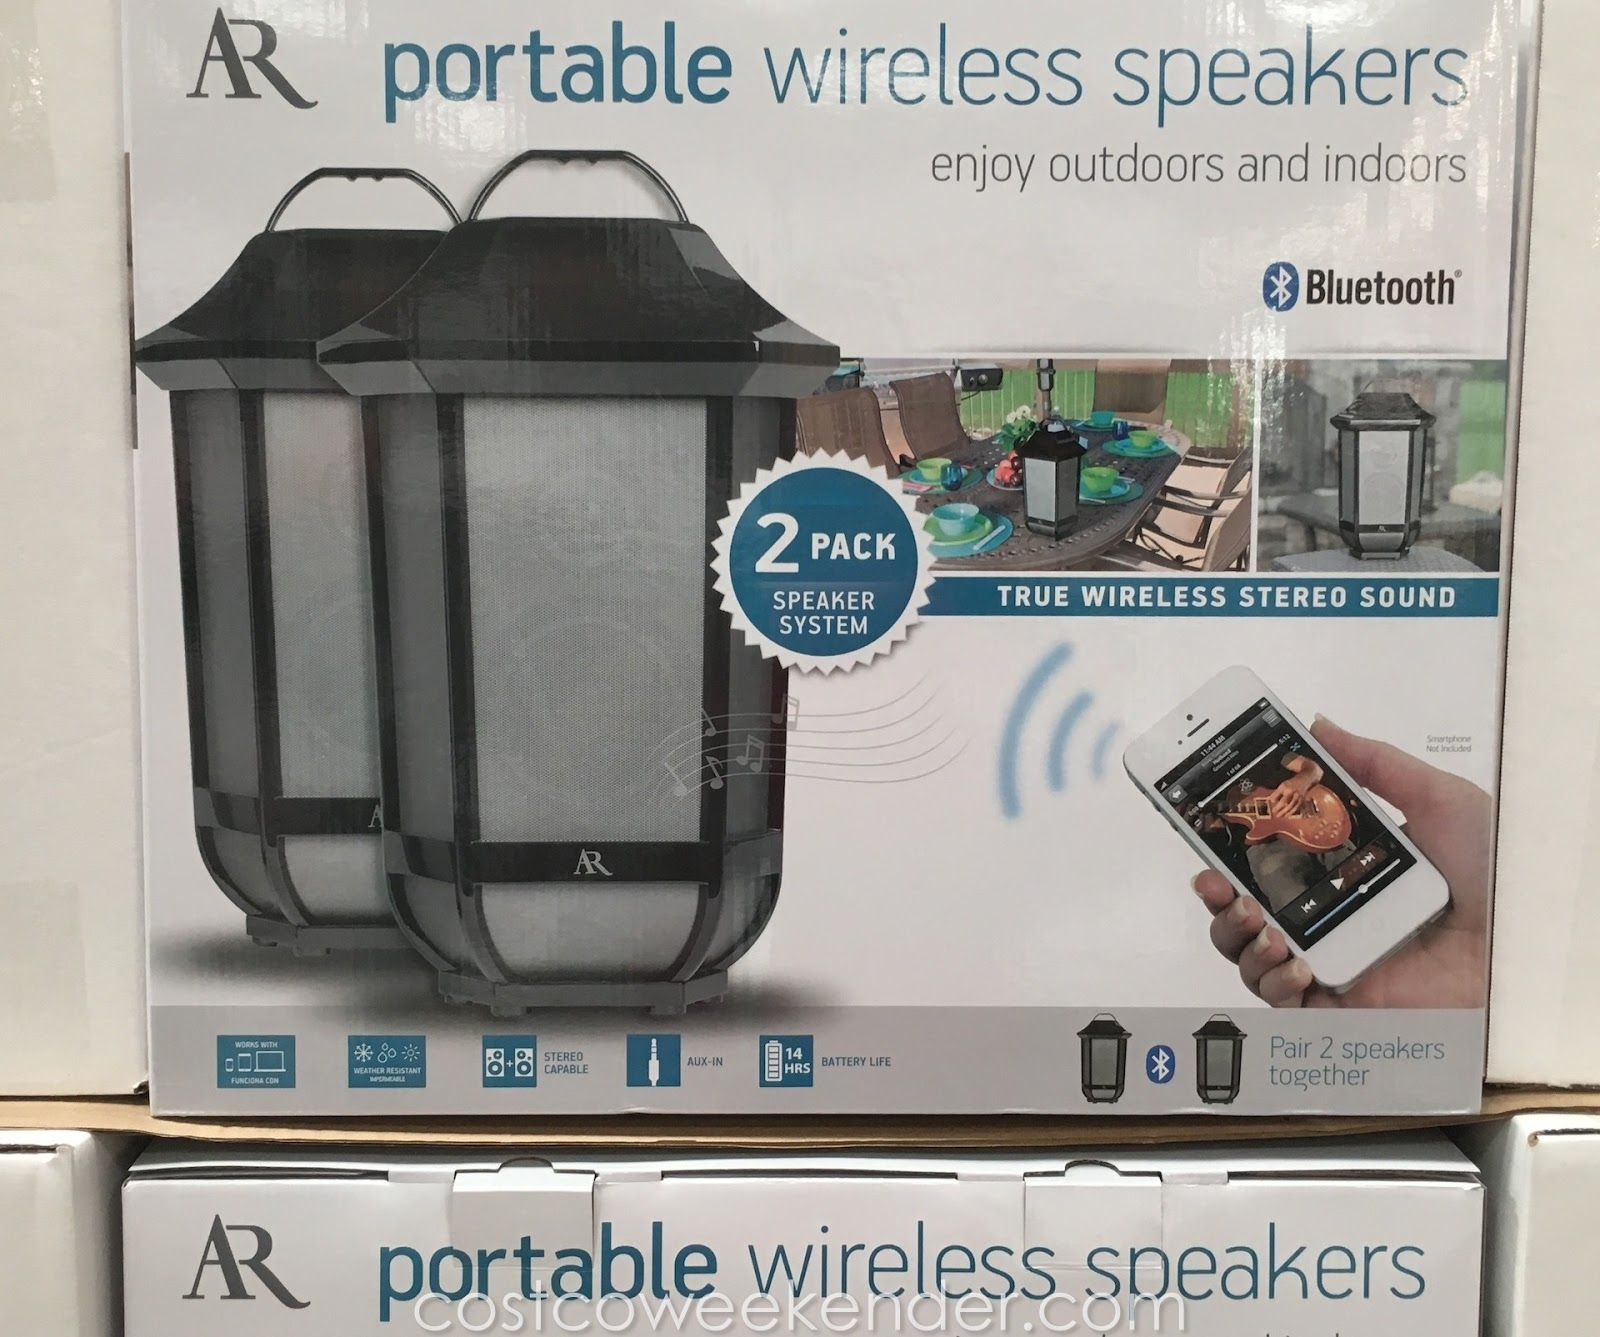 Listen To Some Of Your Favorite Jams With The Acoustic Research Glendale Portable Wireless Speakers